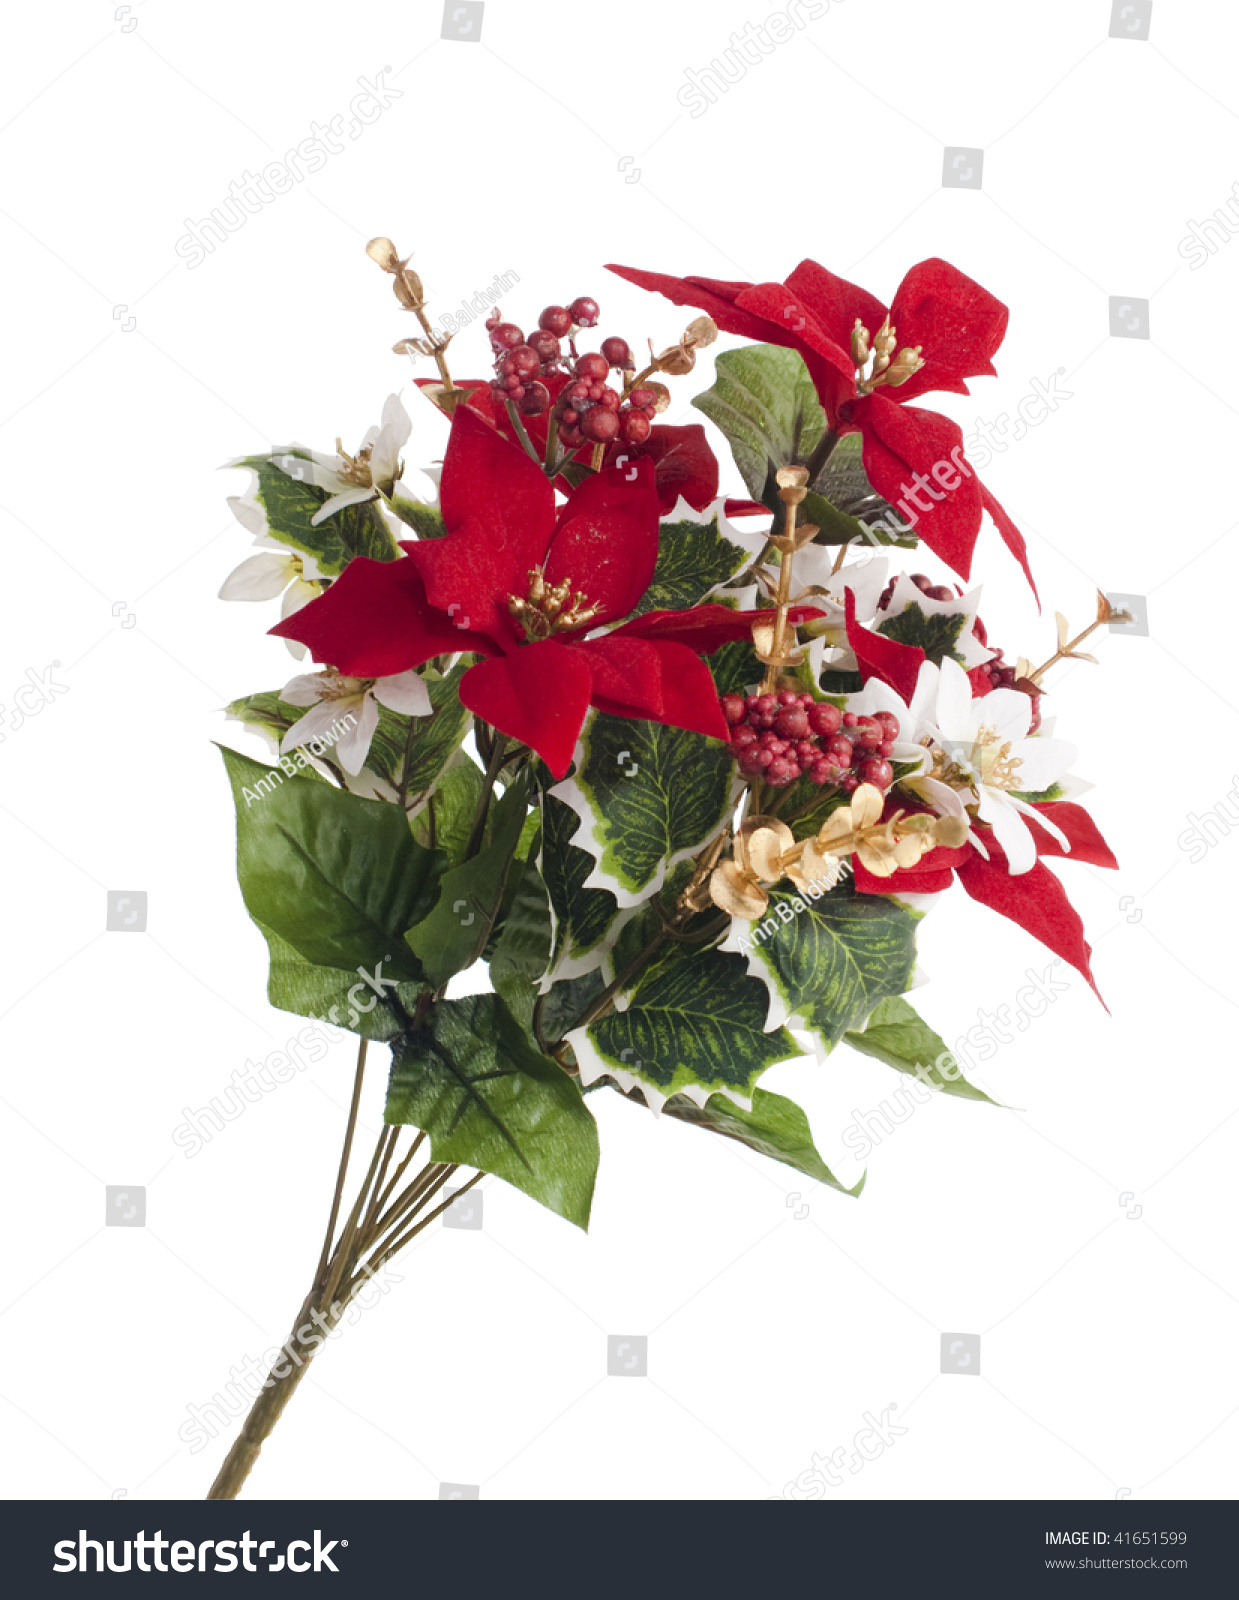 Bouquet Of Artificial Poinsettia And Berries For Christmas Decoration Isolated On White Stock